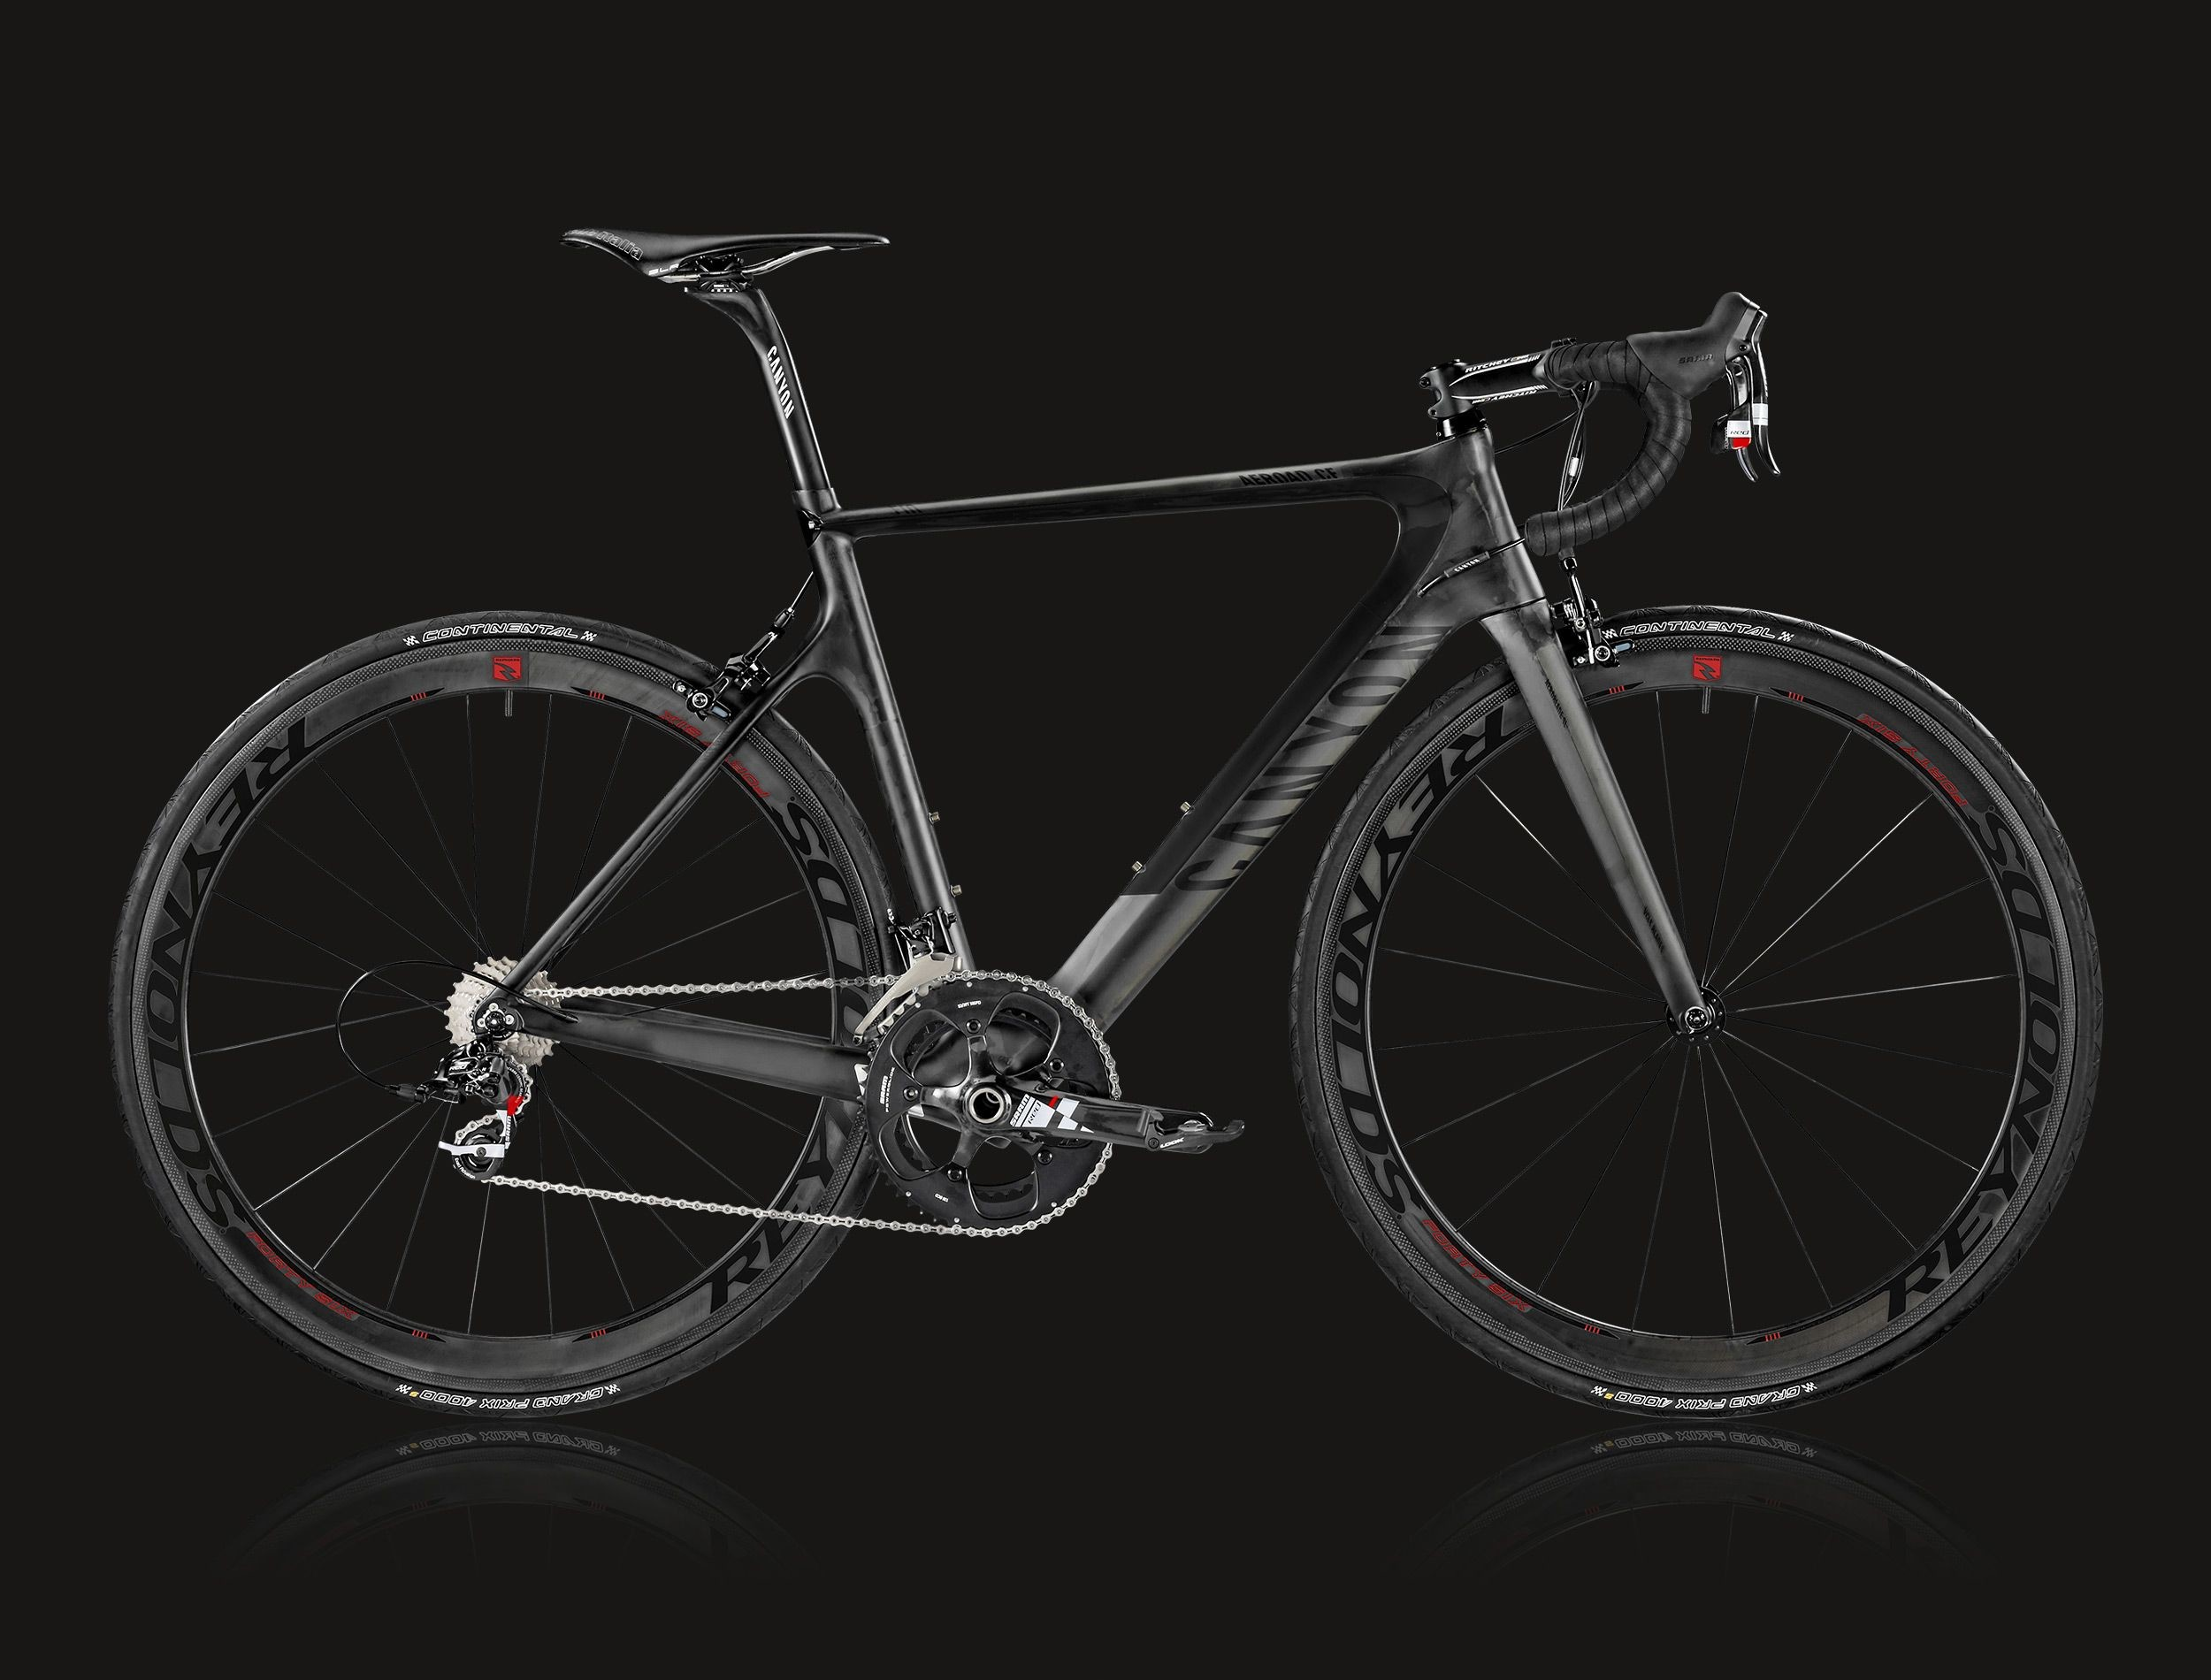 Specialized Road Bike Wallpaper – Viewing Gallery